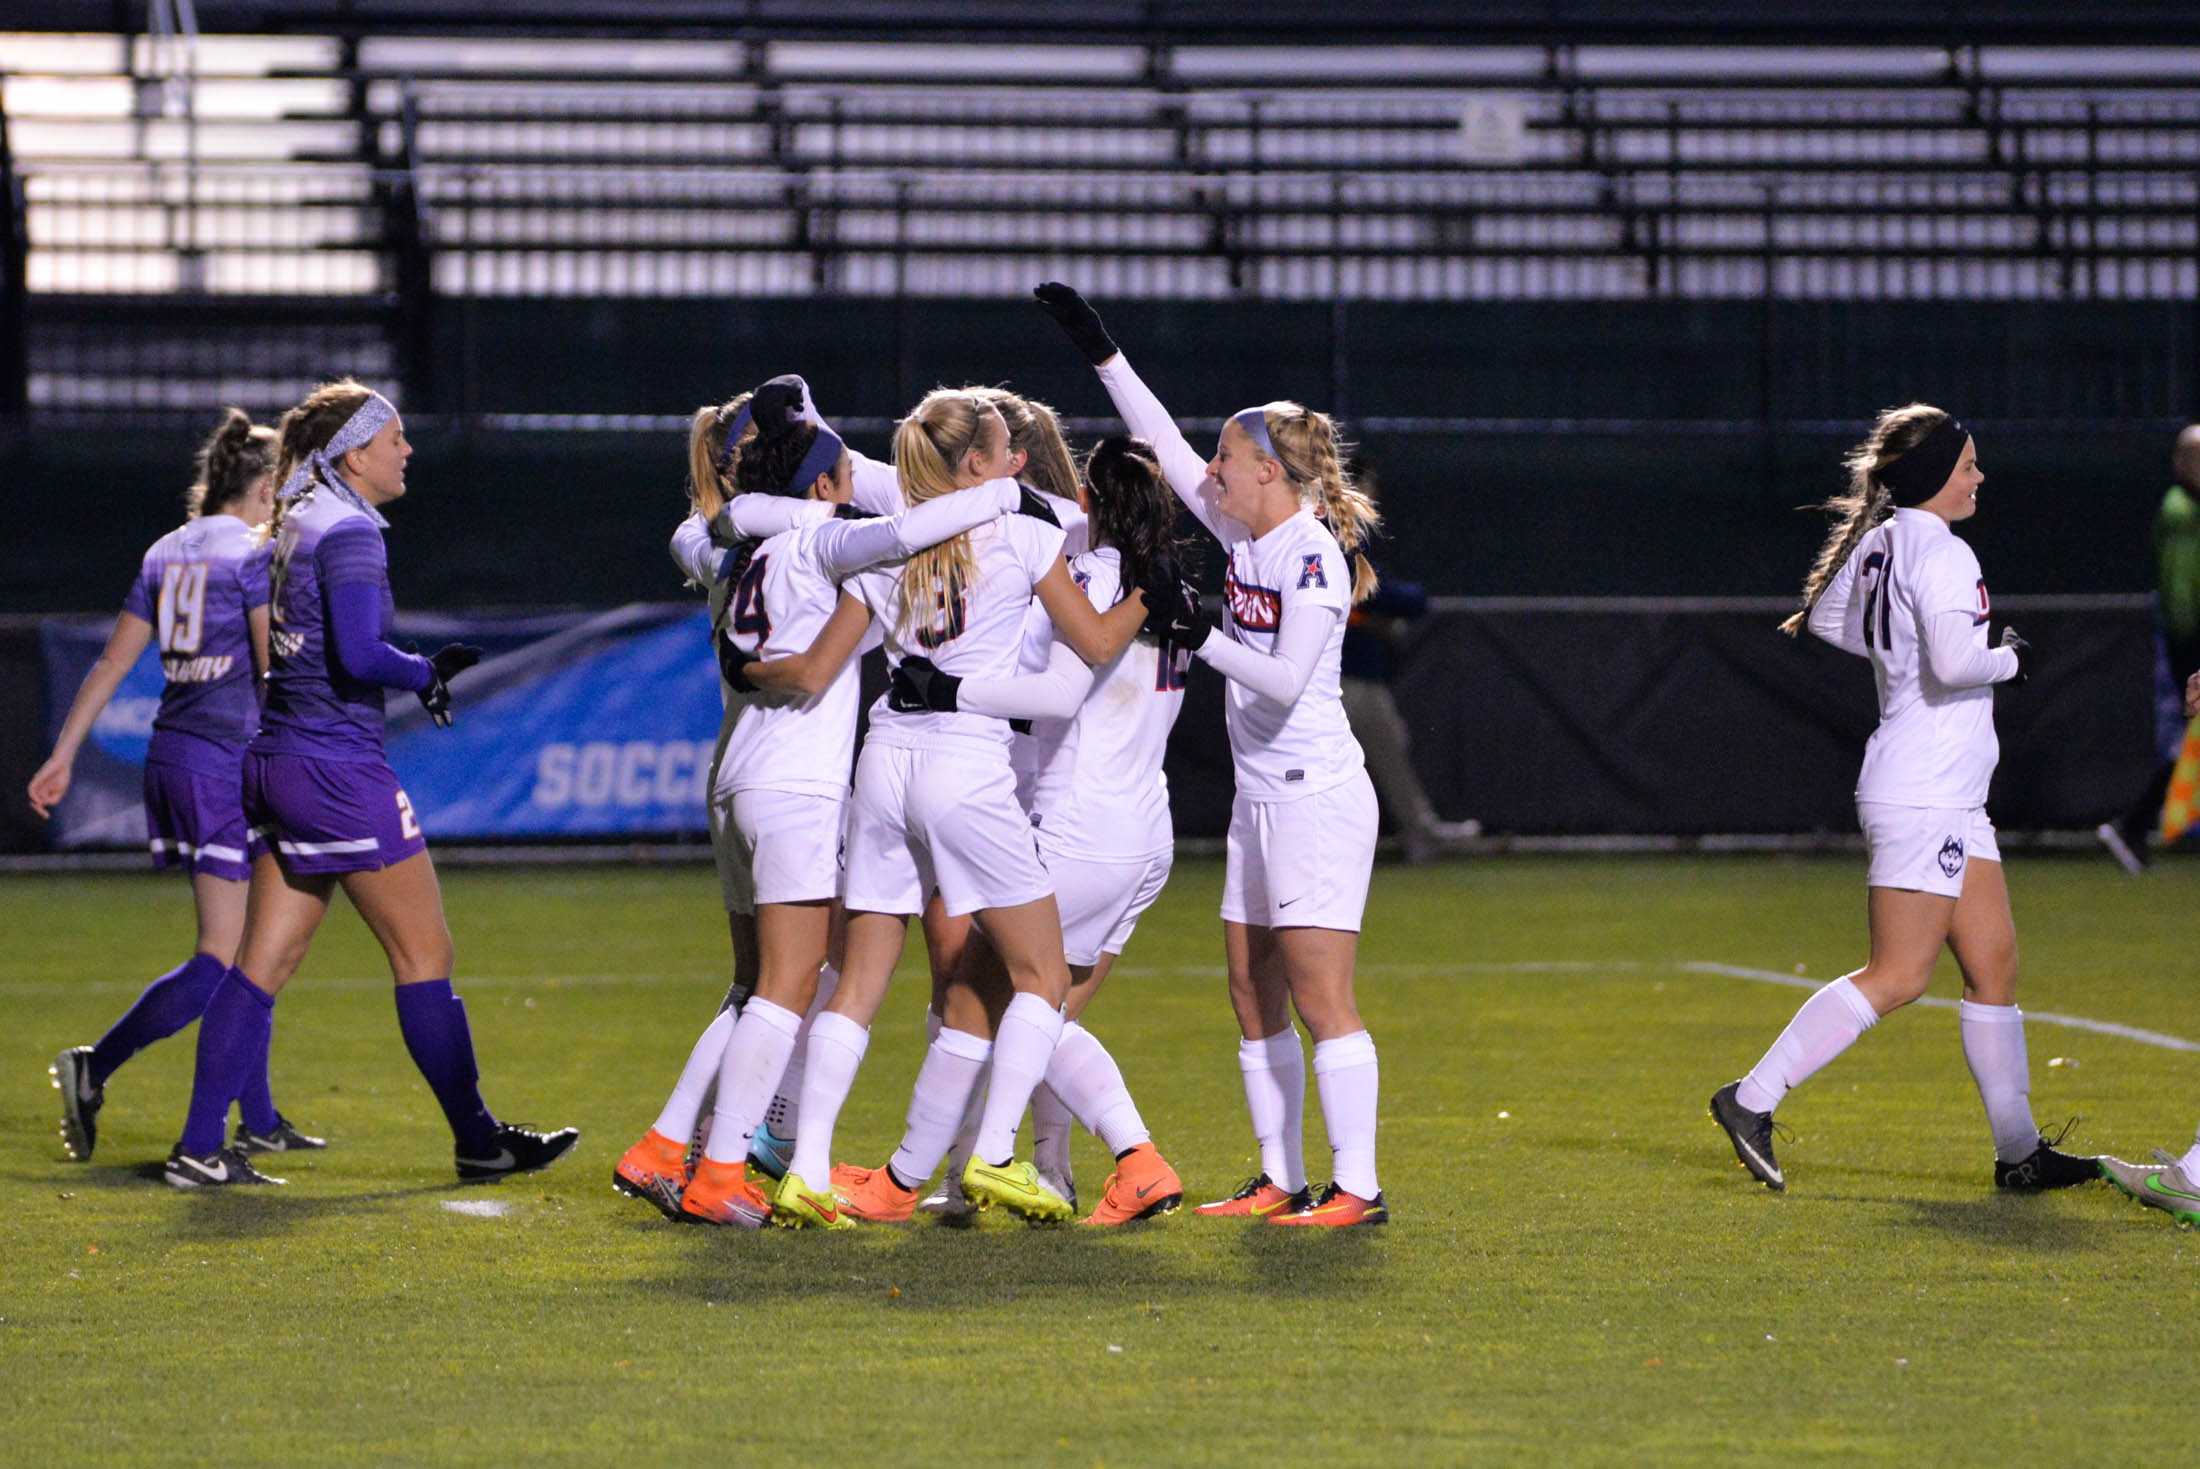 The team celebrates following midfielder Alexa Casmiro's (4) opening goal of the Huskies 4-2 victory over UAlbany in the first round of the NCAA tournament at Morrone Stadium on Saturday, Nov. 12, 2016. (Amar Batra/The Daily Campus)